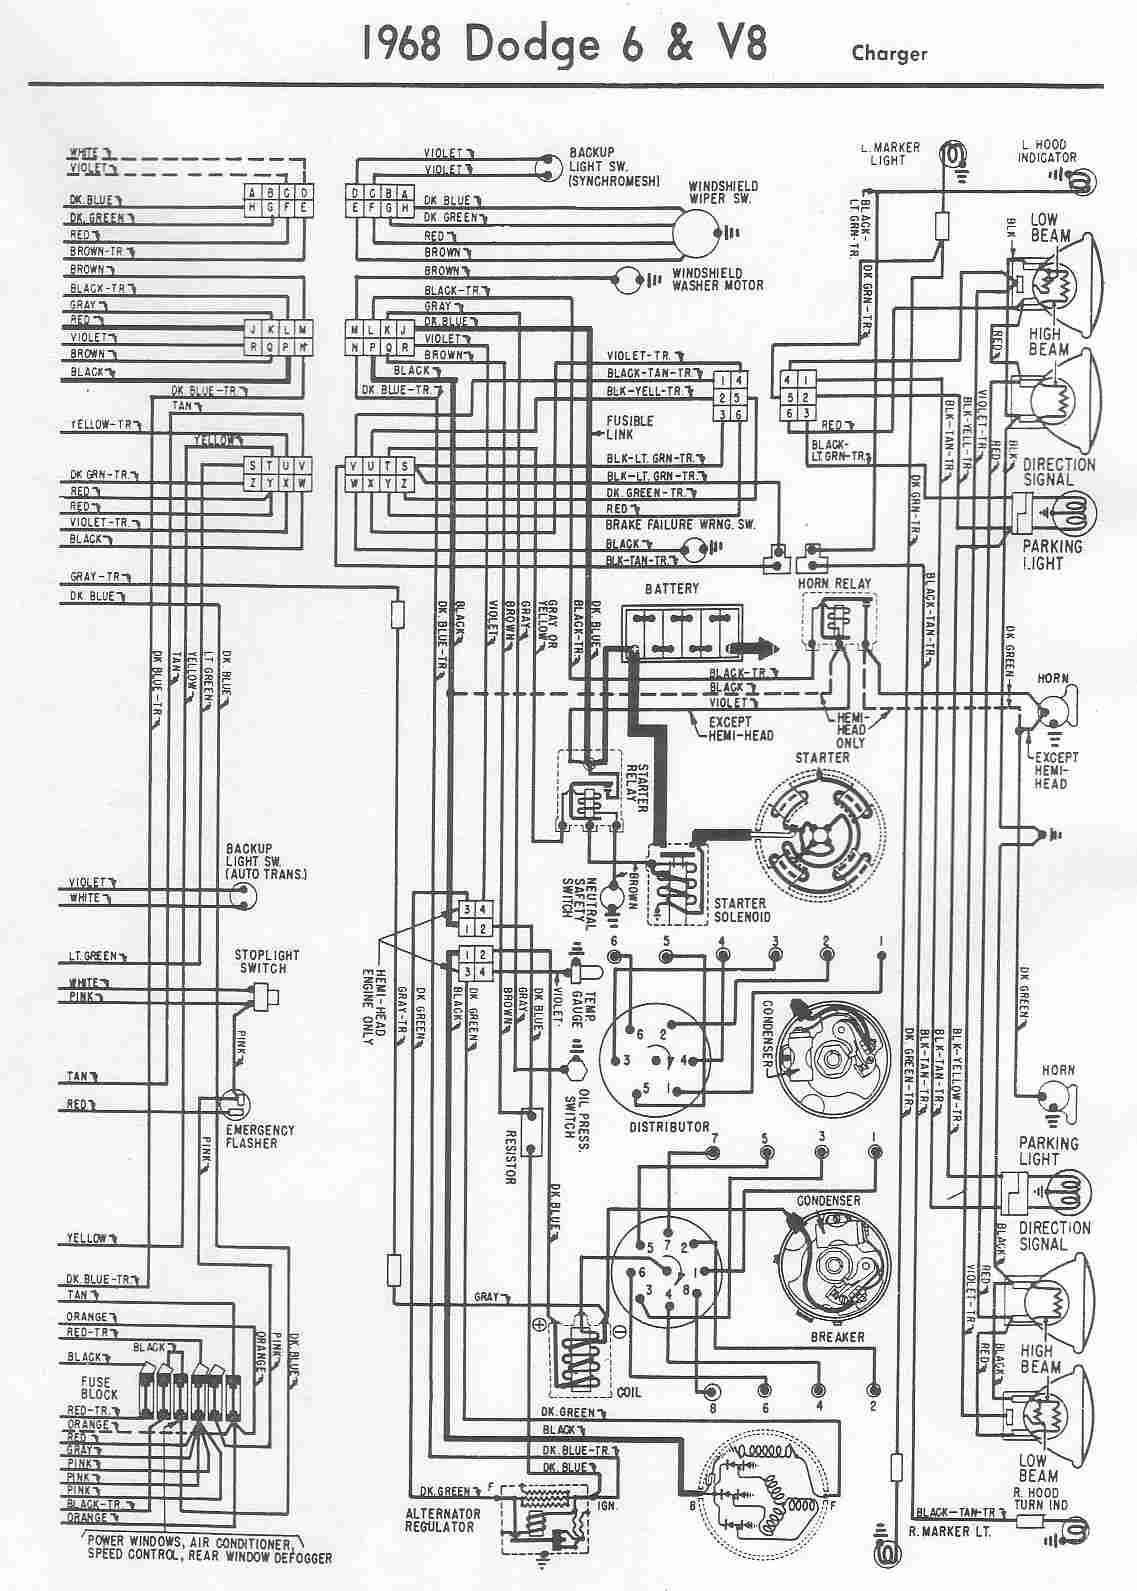 charger electrical wiring diagram of 1968 dodge 6 and v8?t\=1508404771 1975 dodge truck wiring diagram 1972 dodge d100 wiring diagram 81 Dodge Alternator Diagram at creativeand.co